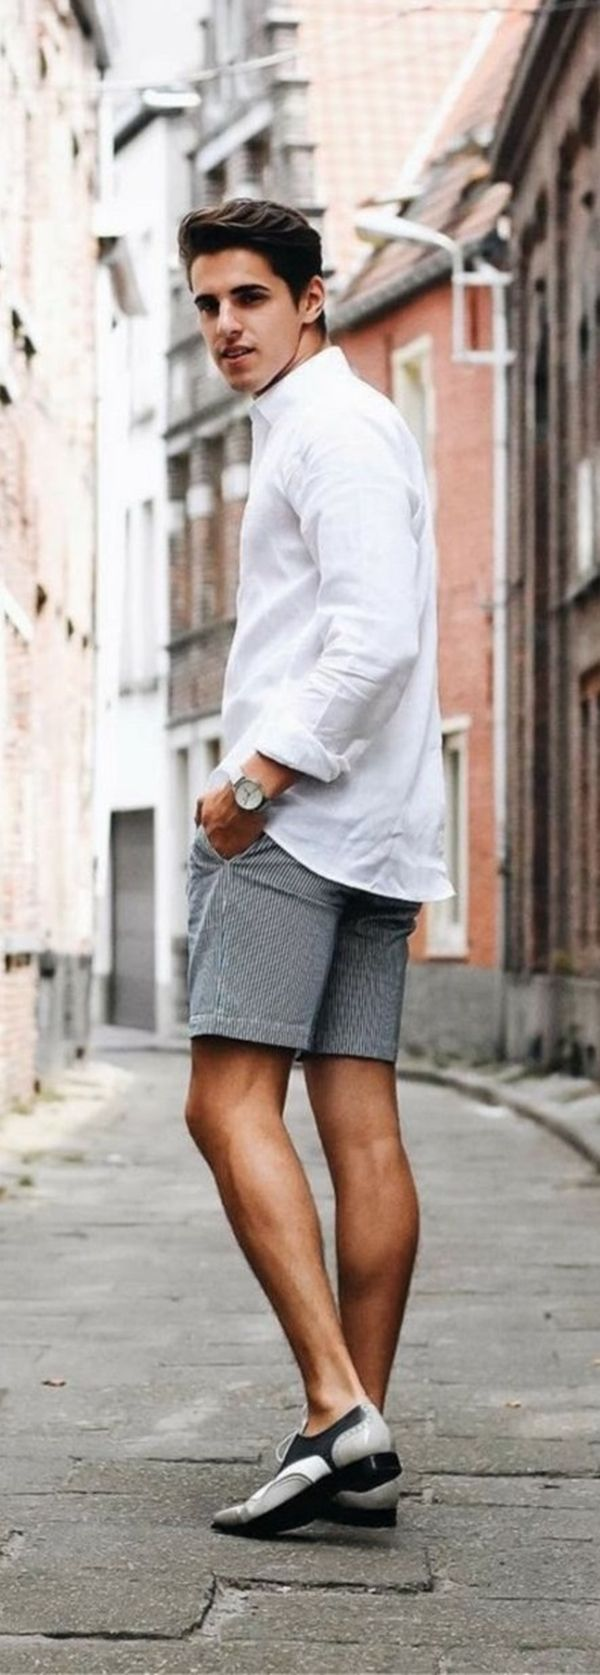 7c24a1c6b 45 Easy Yet Sexy Travel Outfits for Men